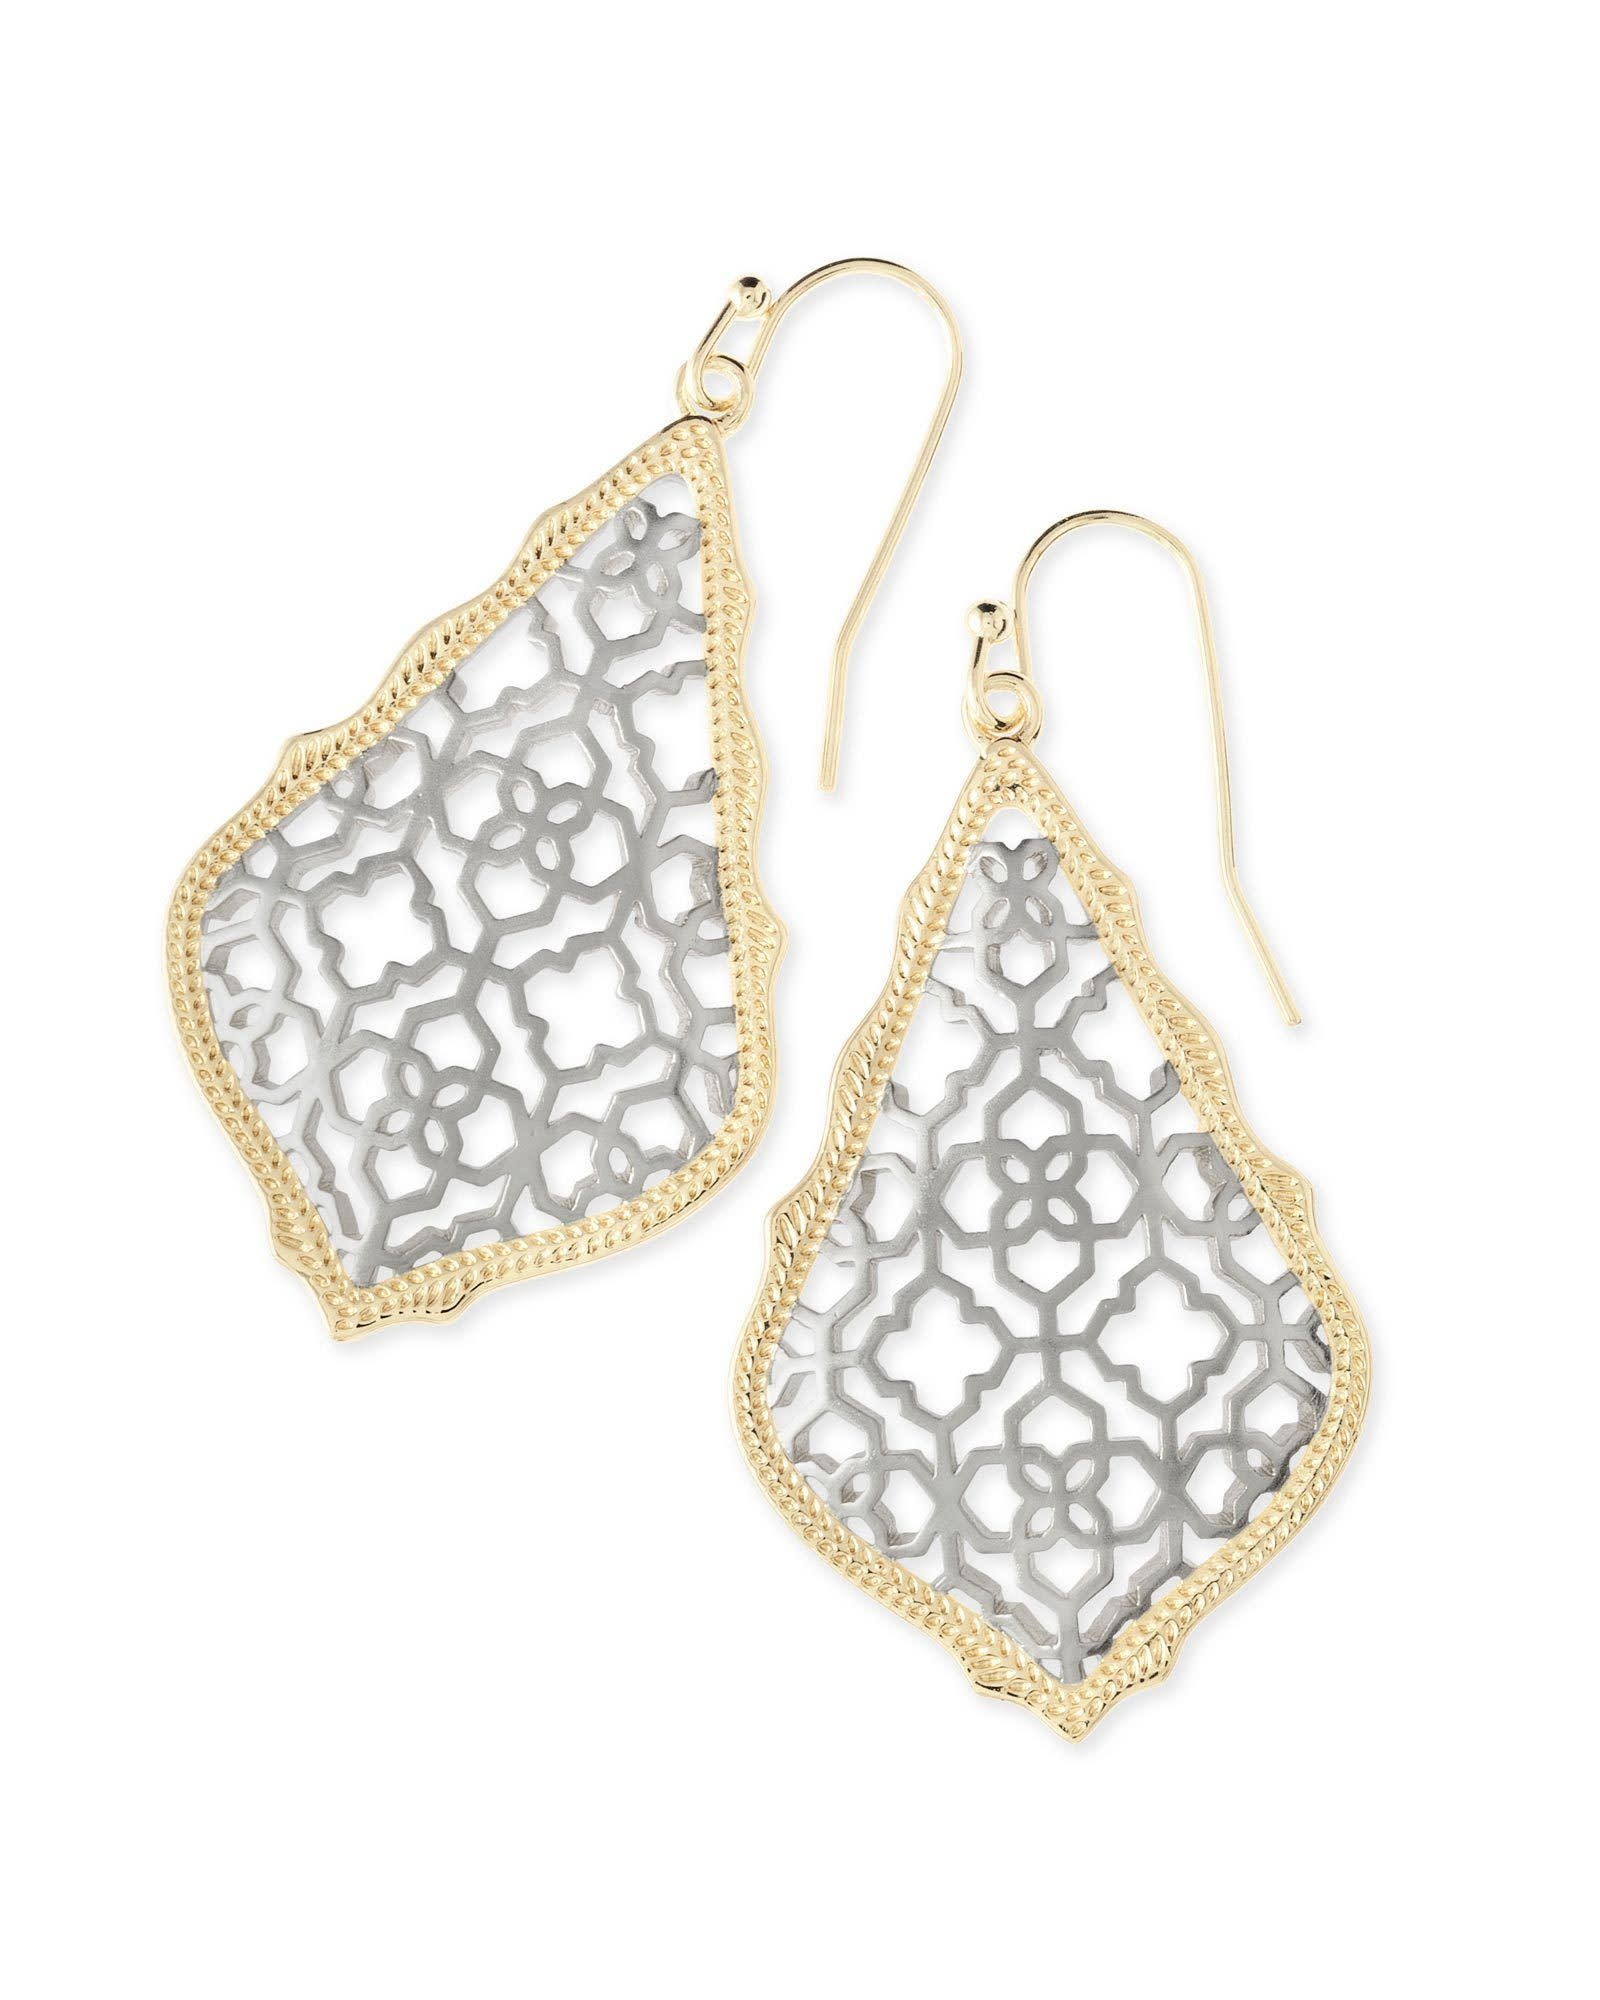 Addie Earring Gold/Rhodium Mix